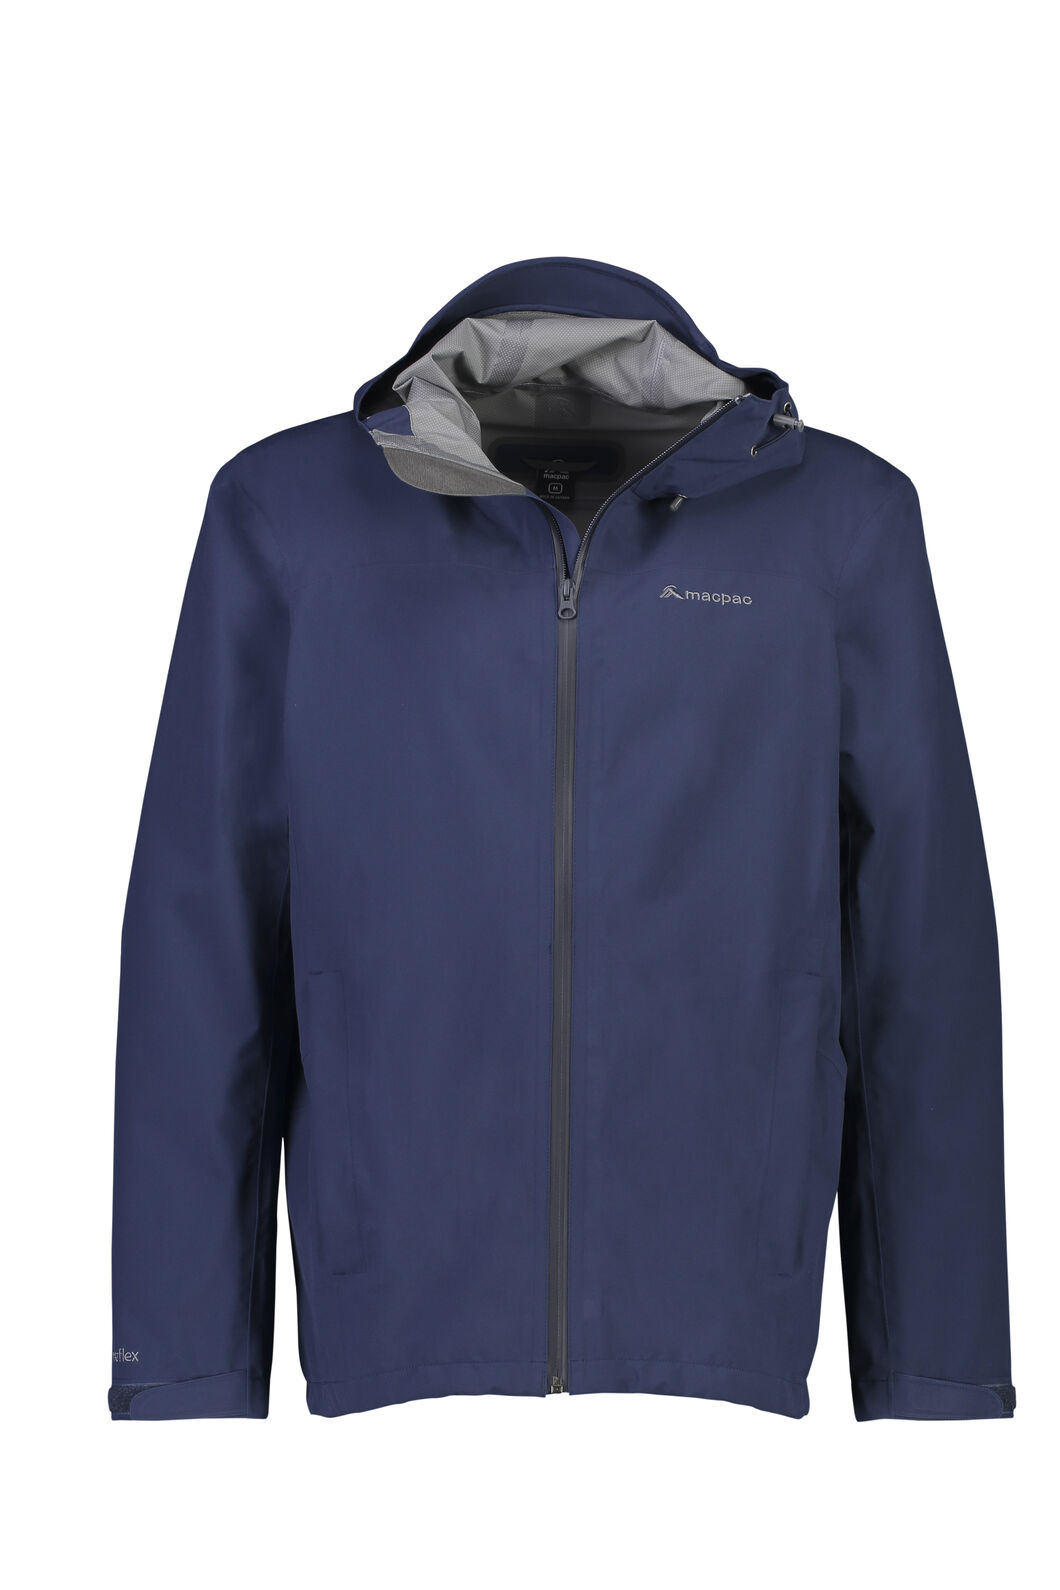 Macpac Dispatch Rain Jacket - Men's, Black Iris, hi-res